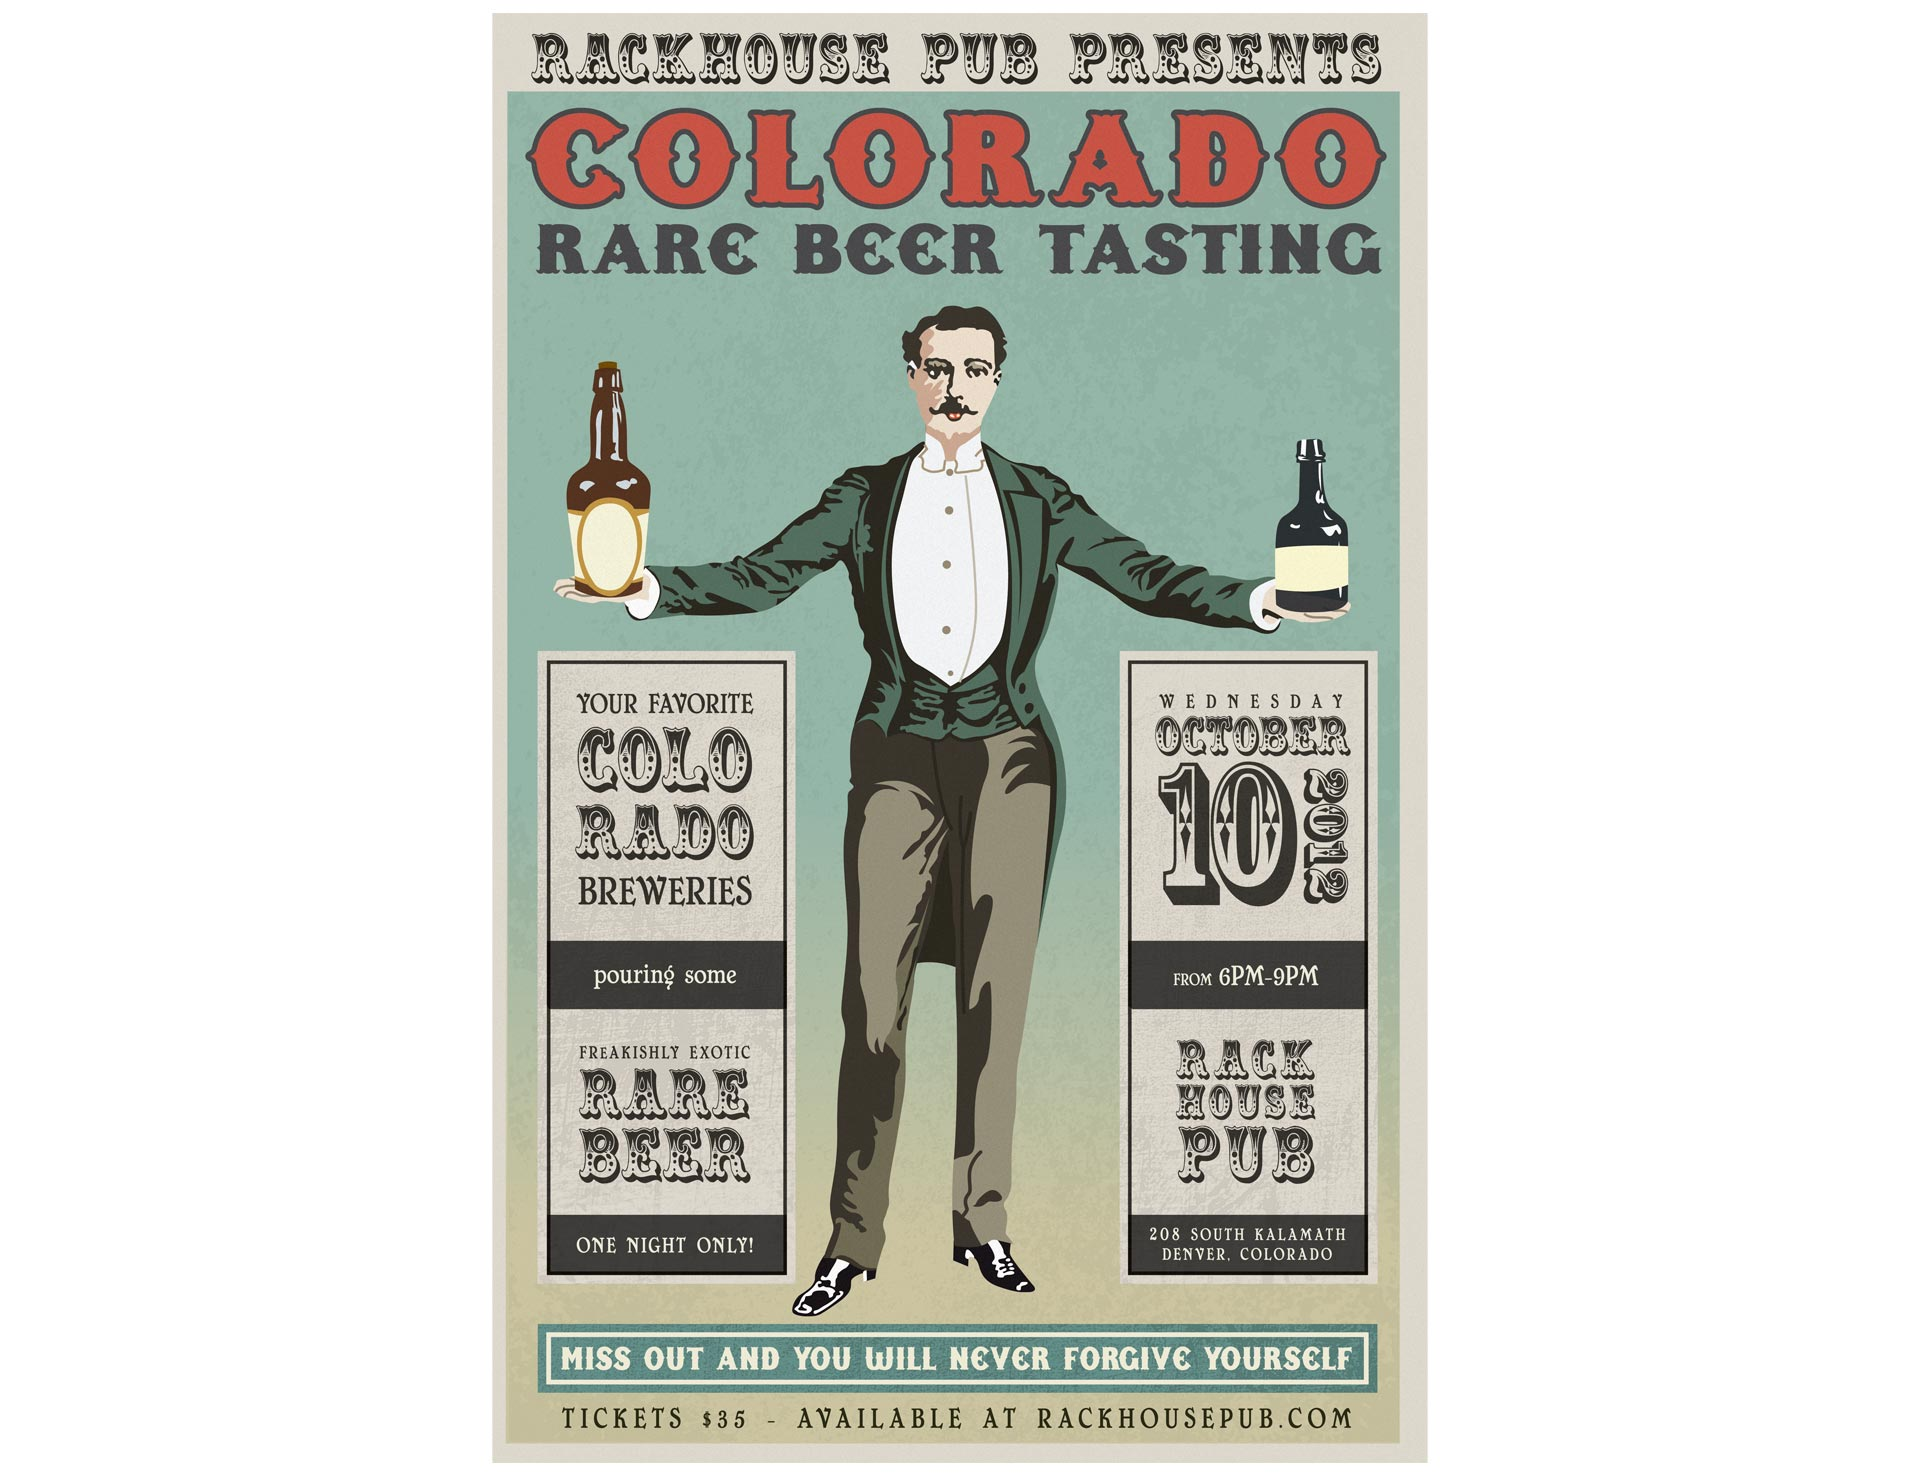 Colorado Rare Beer Tasting 2012